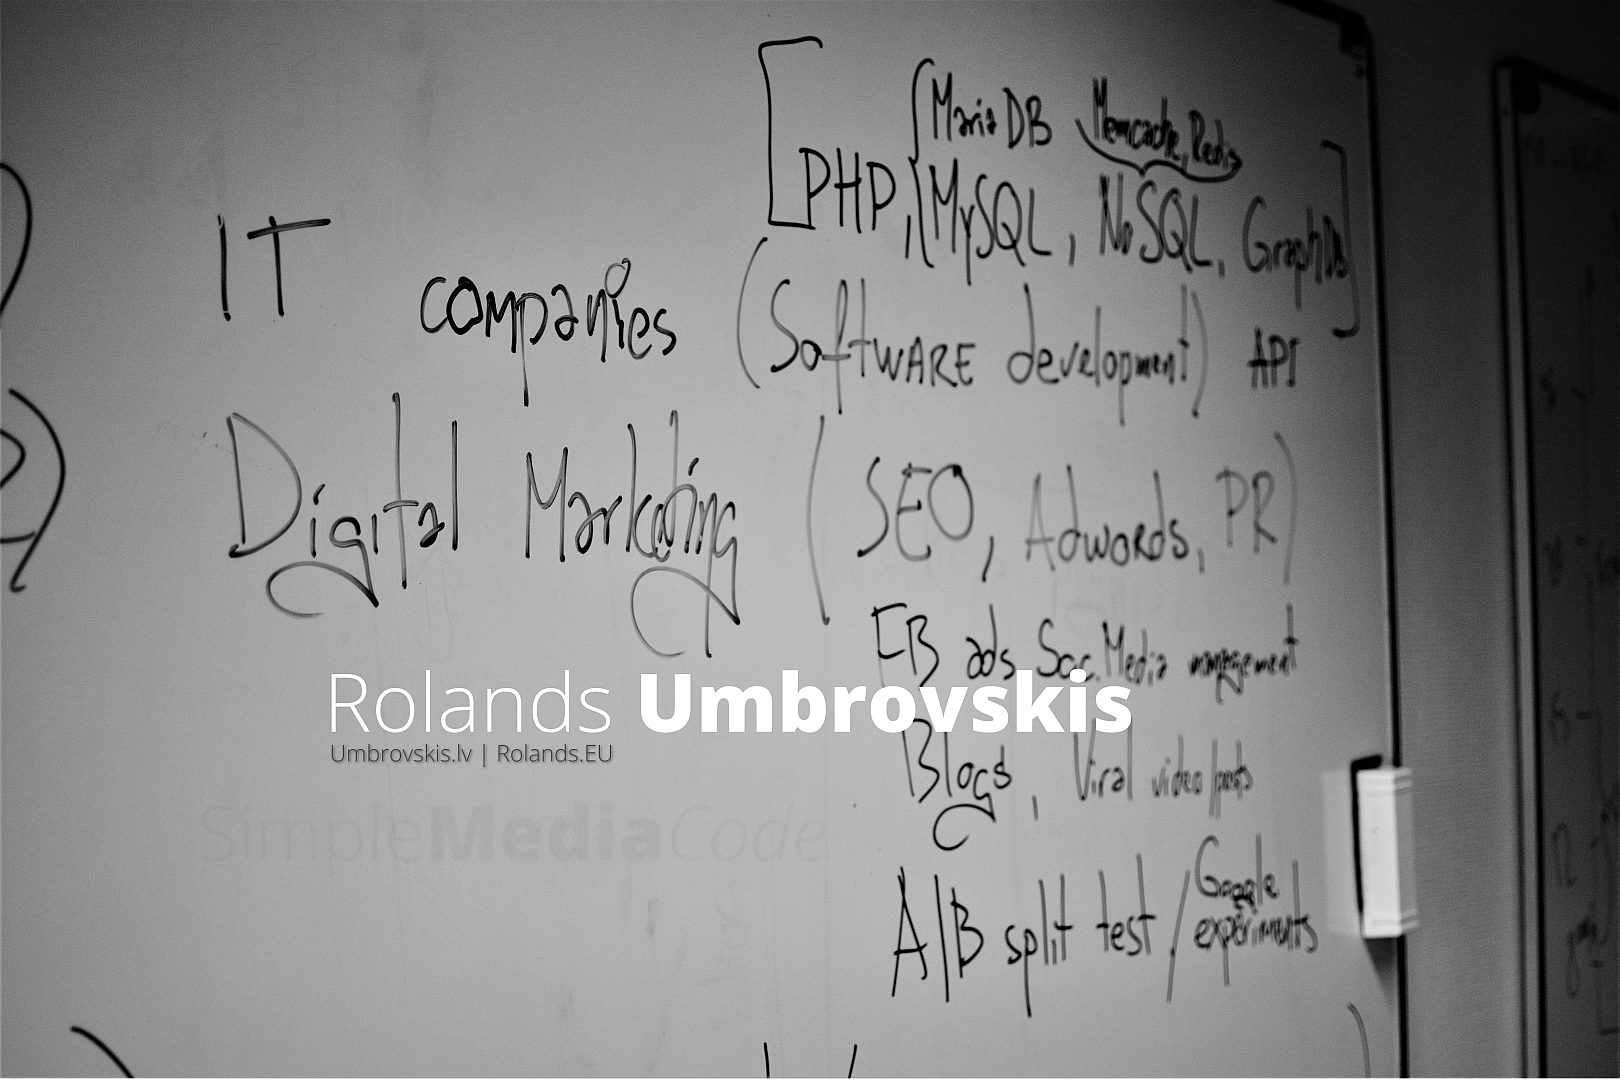 Rolands Umbrovskis. Web, mārketings, inovācijas.